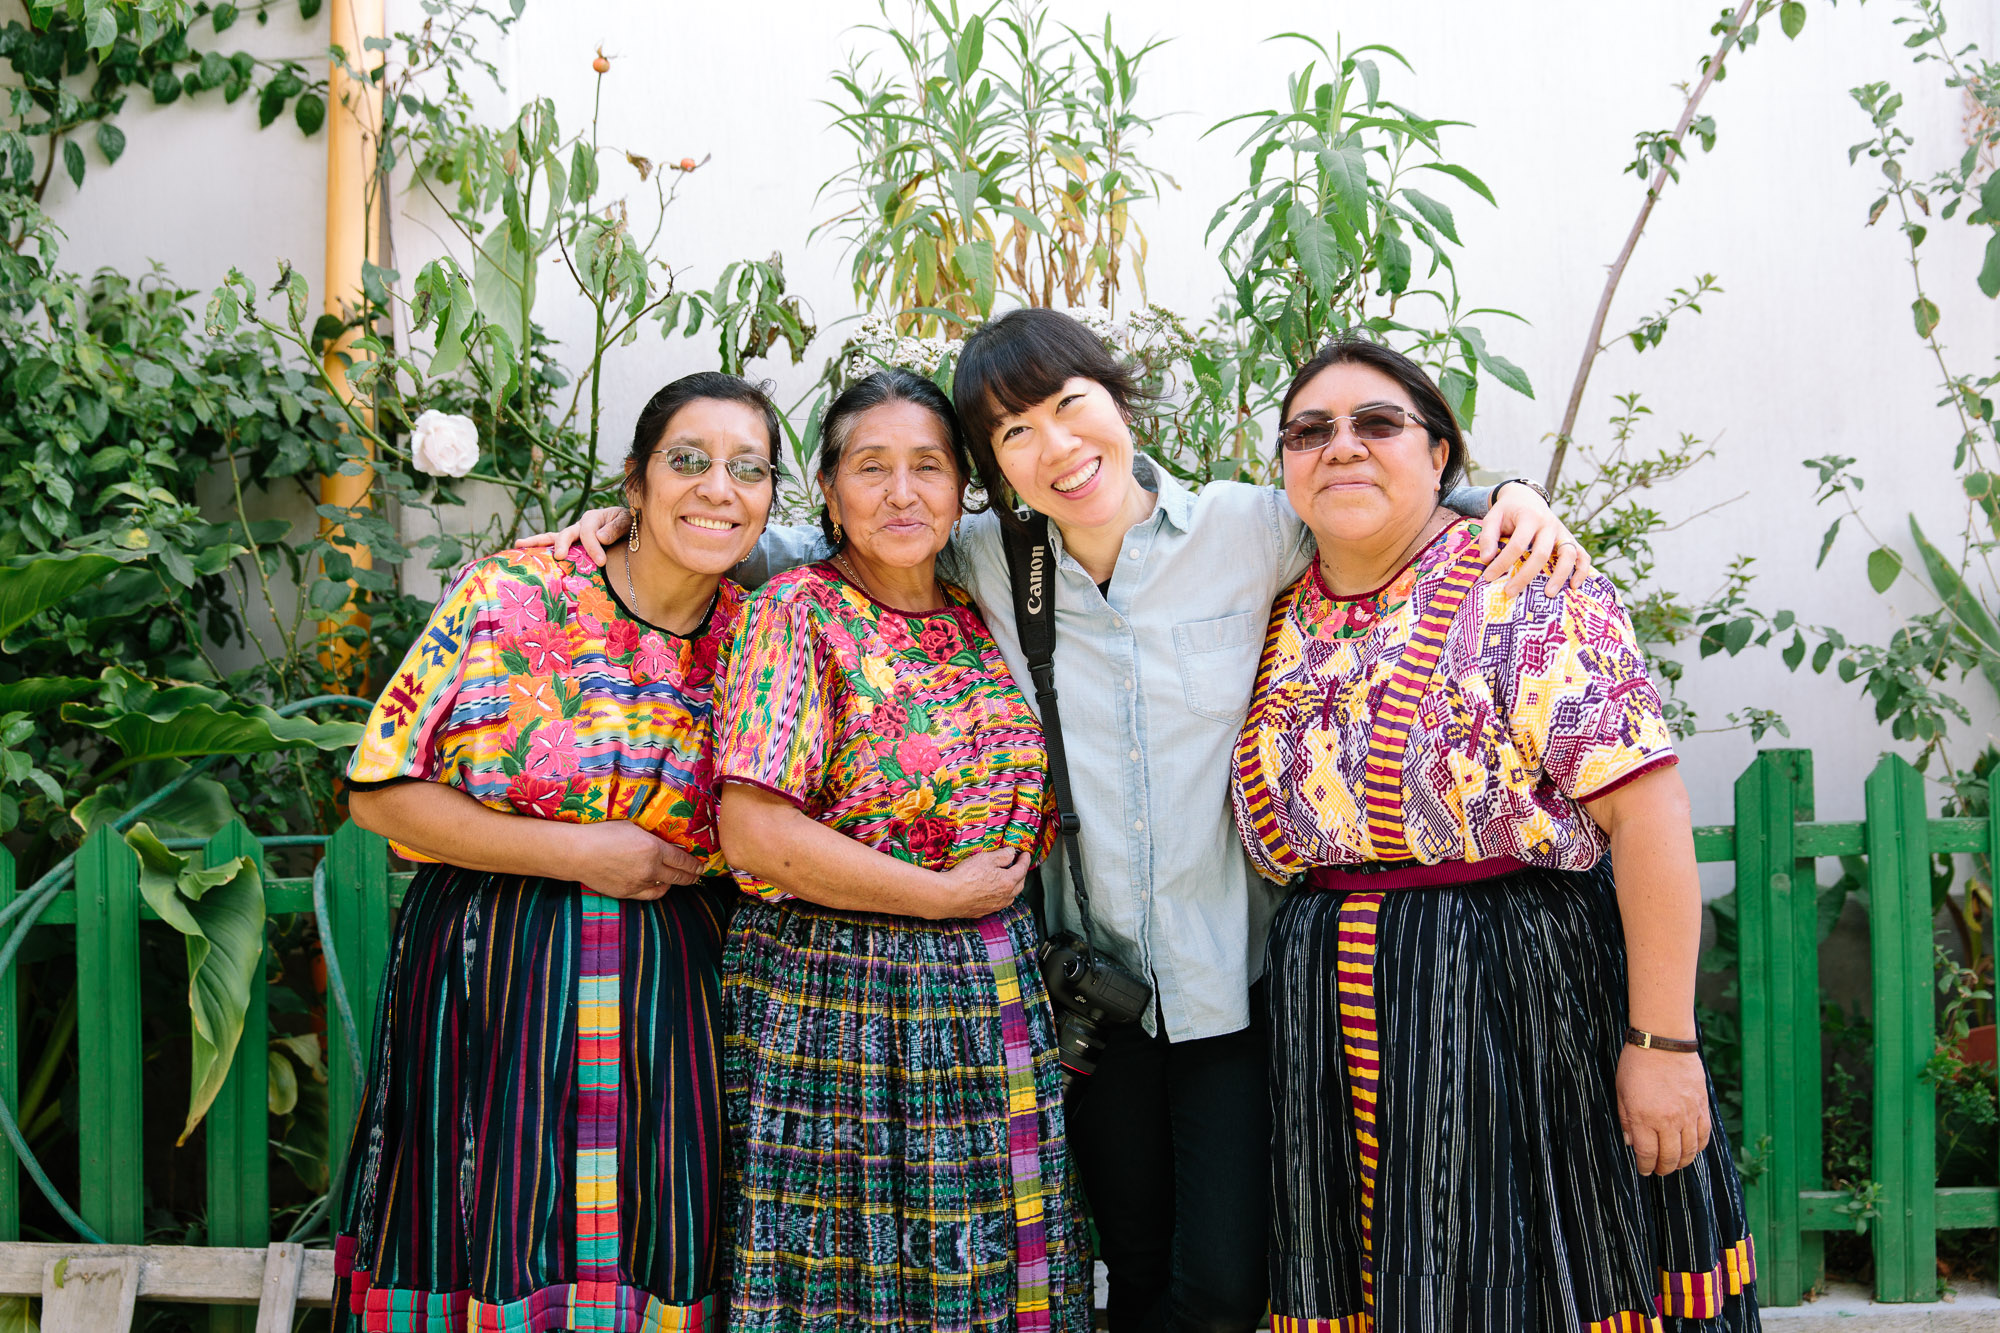 These ladies belong to CODECOT, a group that trains and supports a network of 800 midwives around Quetzaltenango.